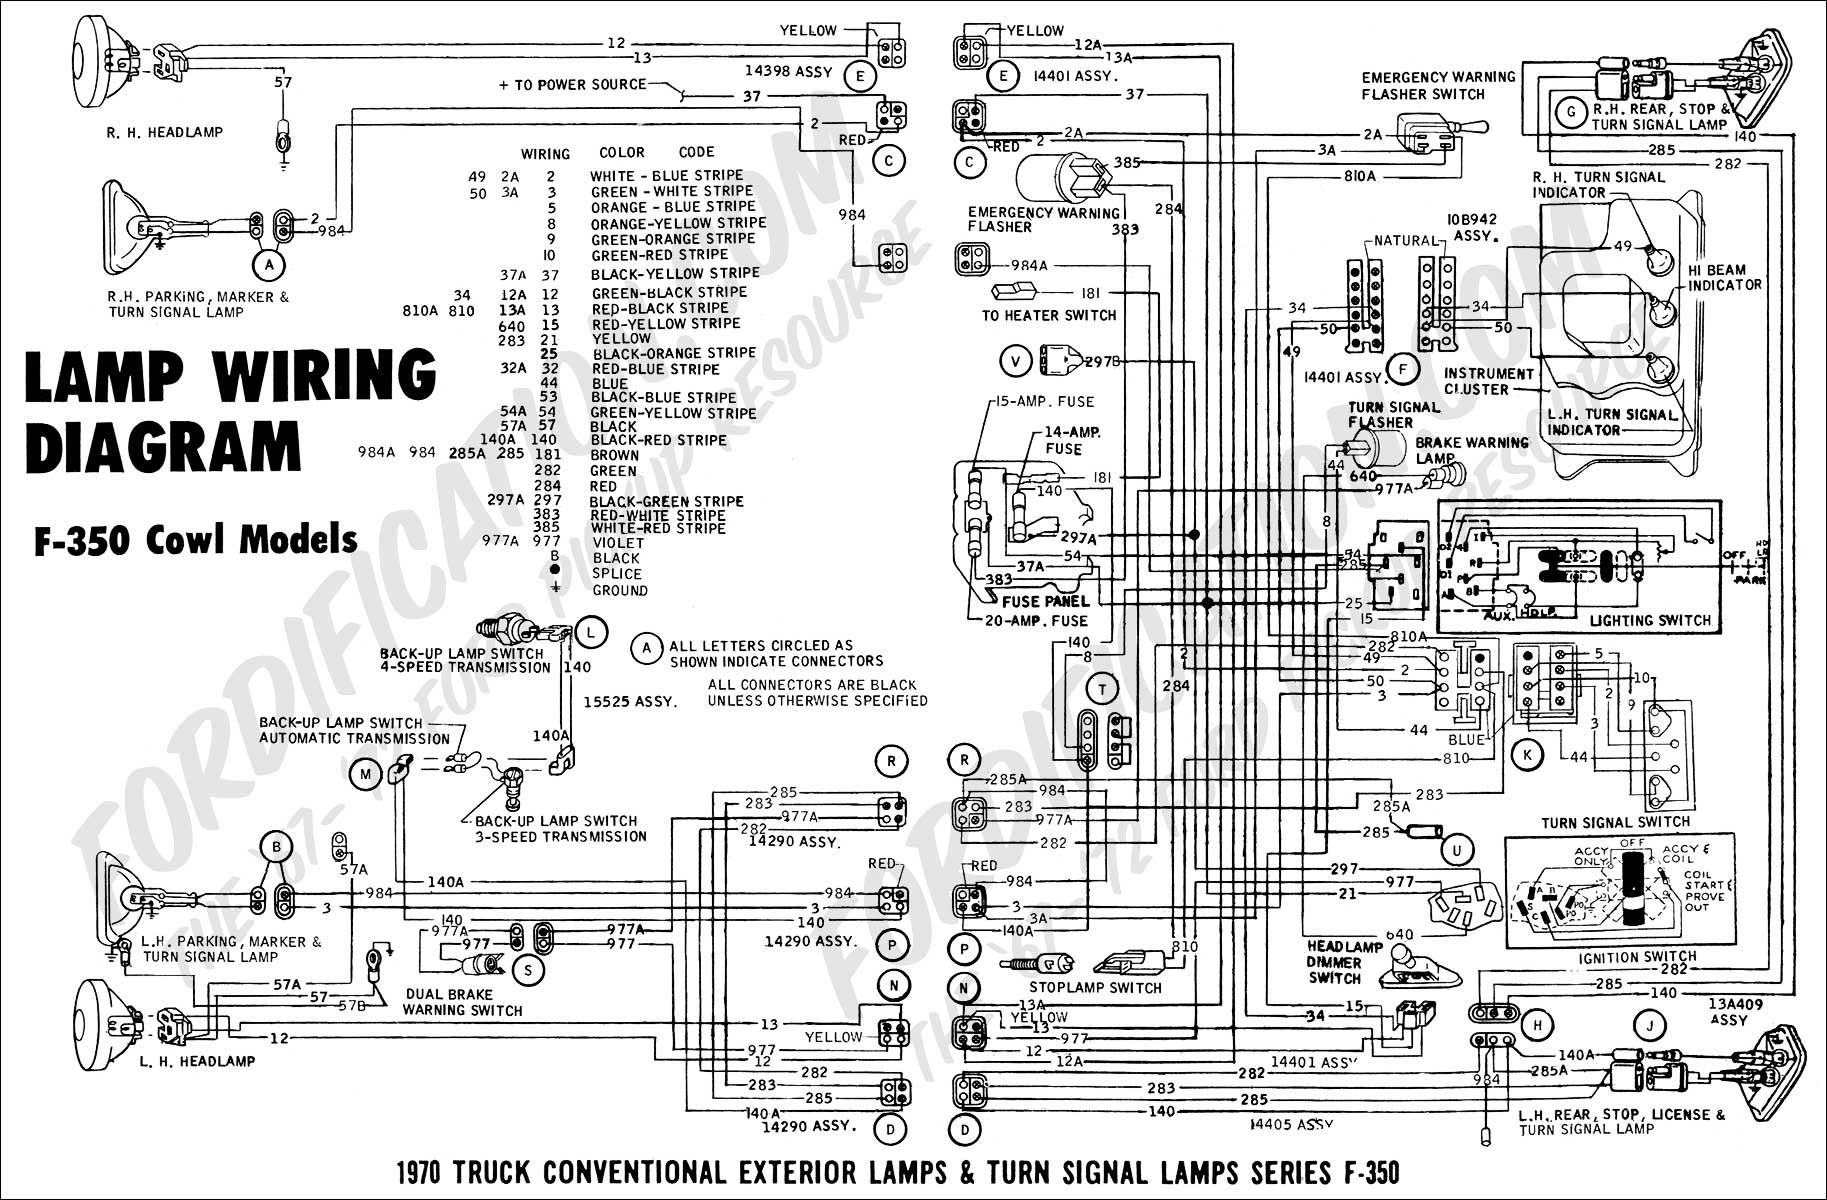 Aermacchi 350 Wiring Diagram Free For You Chevy 327 Starter 67 Truck Radio 66 Gmc Ignition